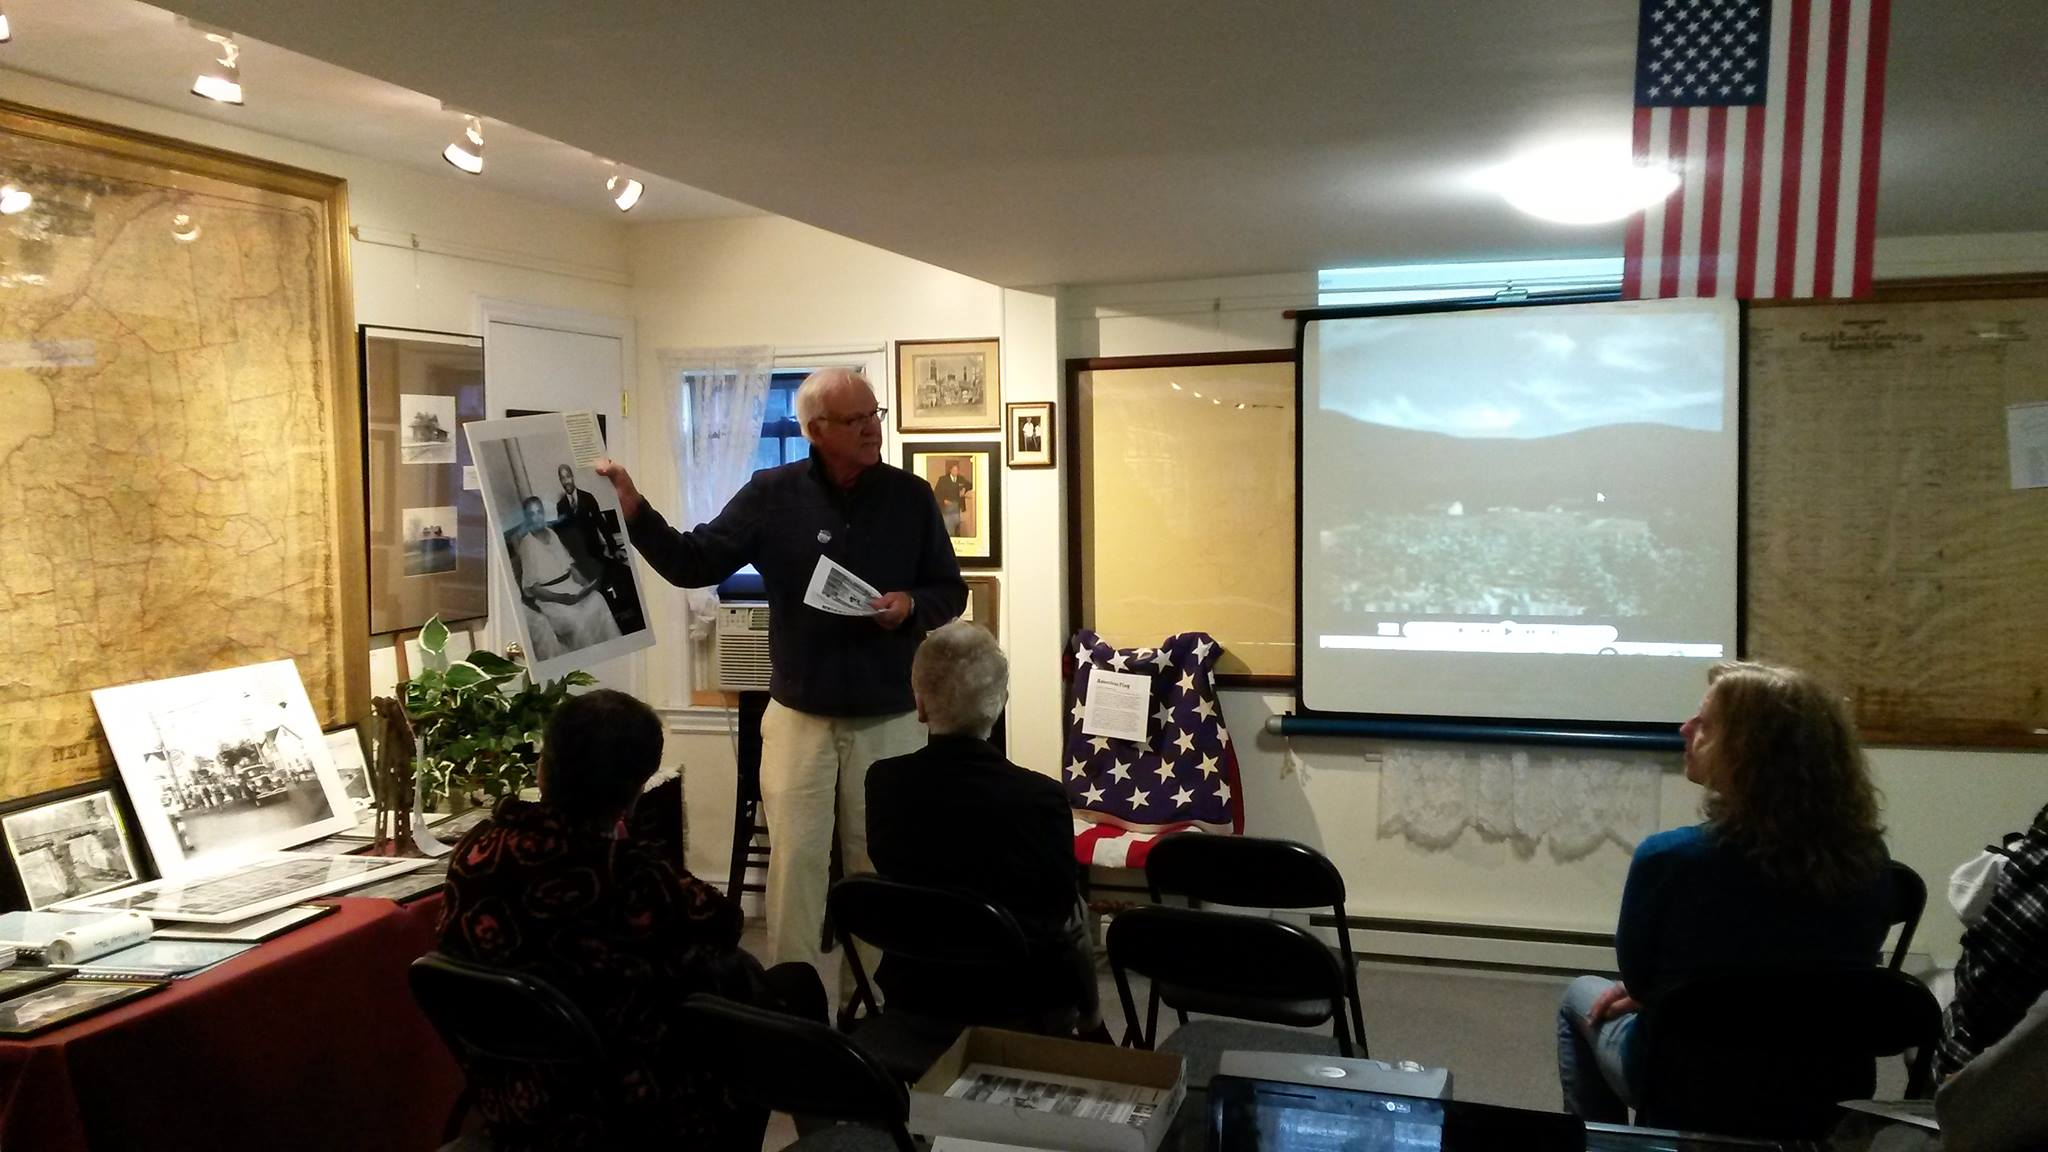 Rik rydant giving a presentation on father divine at heritage day 2017